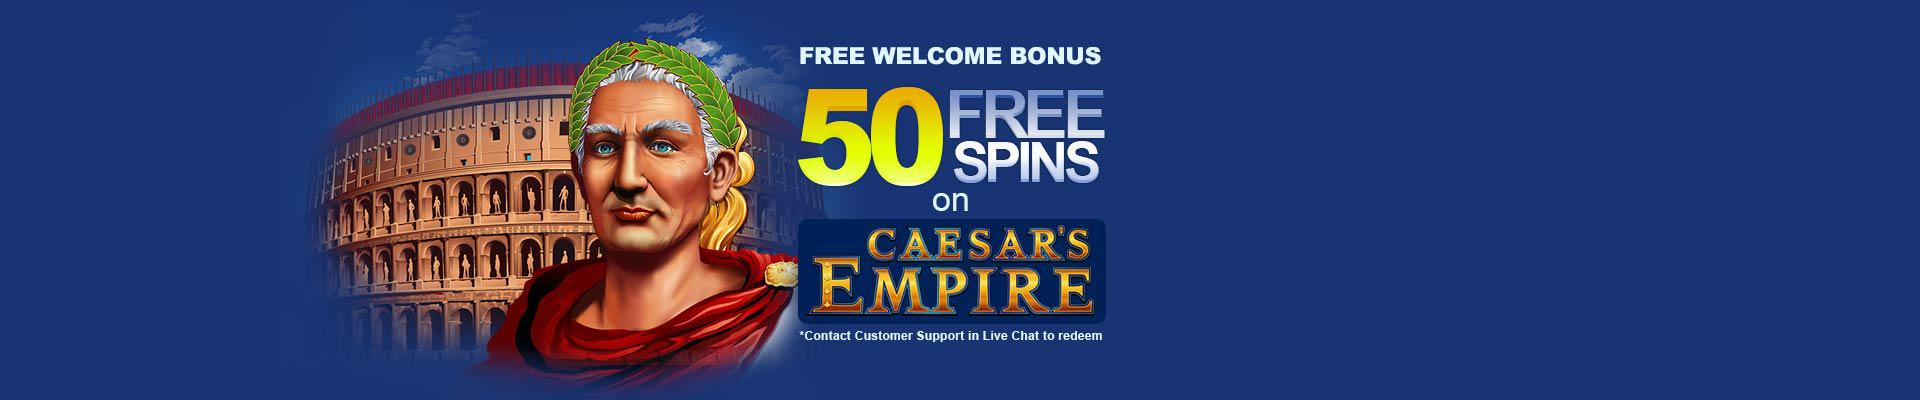 Claim your 50 free spins and R12,000 free welocme bonus